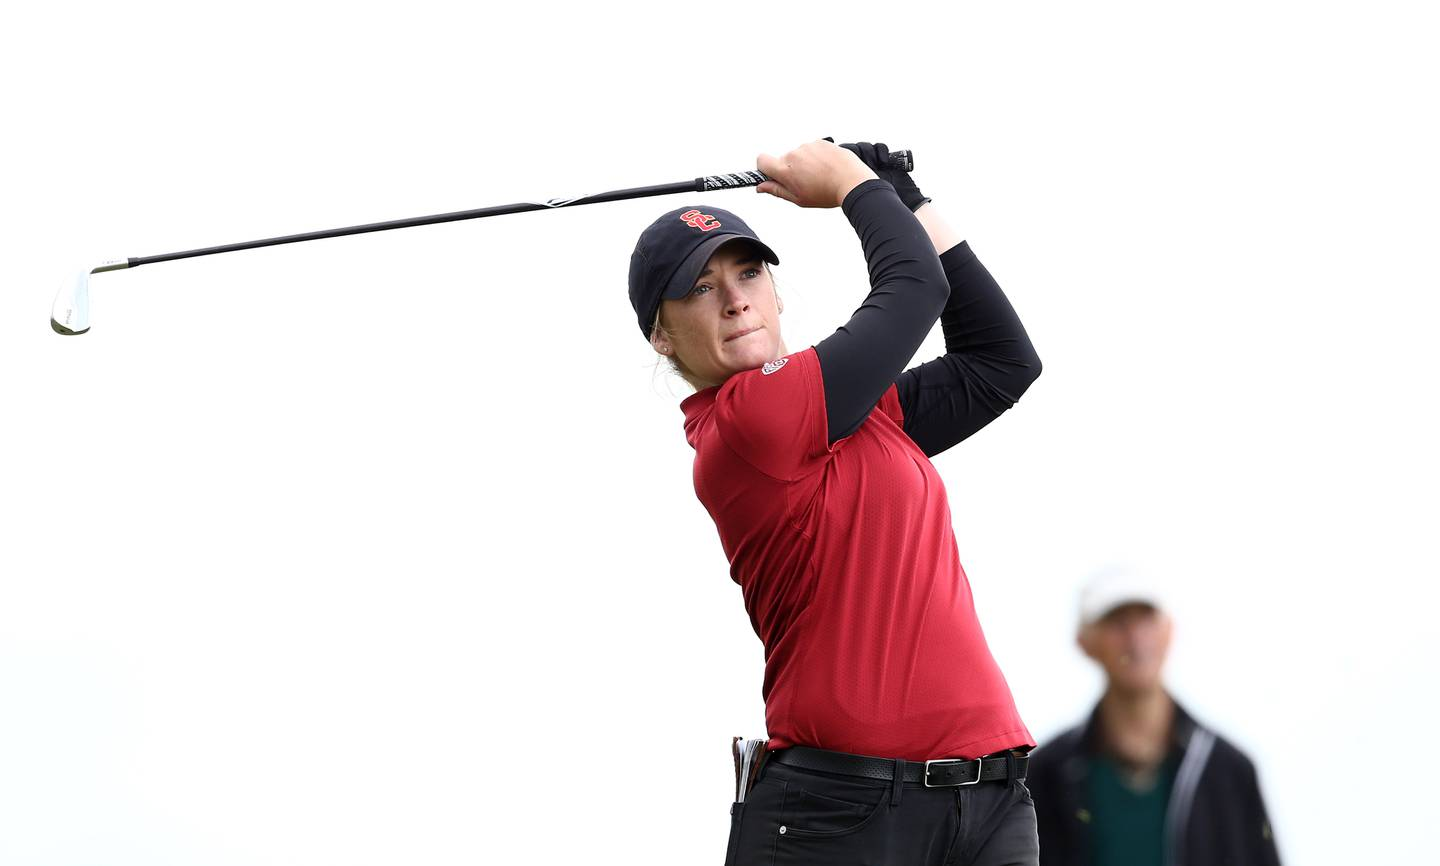 NEWCASTLE, NORTHERN IRELAND - JUNE 15: Amelia Garvey of New Zealand in action during the morning semi final matchplay on day five of the R&A Womens Amateur Championship at Royal County Down Golf Club on June 15, 2019 in Newcastle, Northern Ireland. (Photo by Jan Kruger/R&A/R&A via Getty Images)